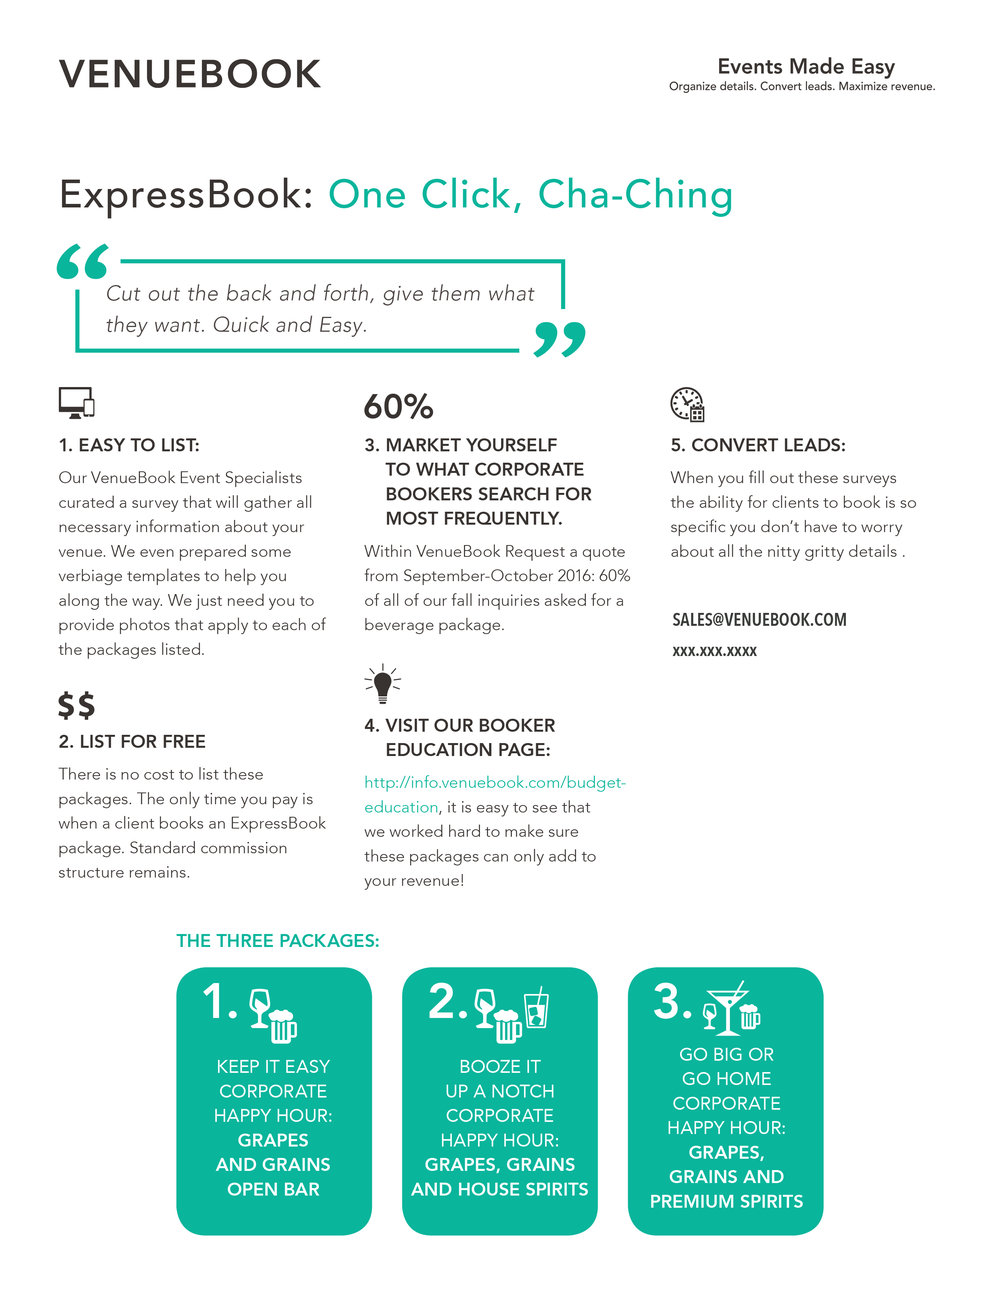 Cha-Ching Infographic